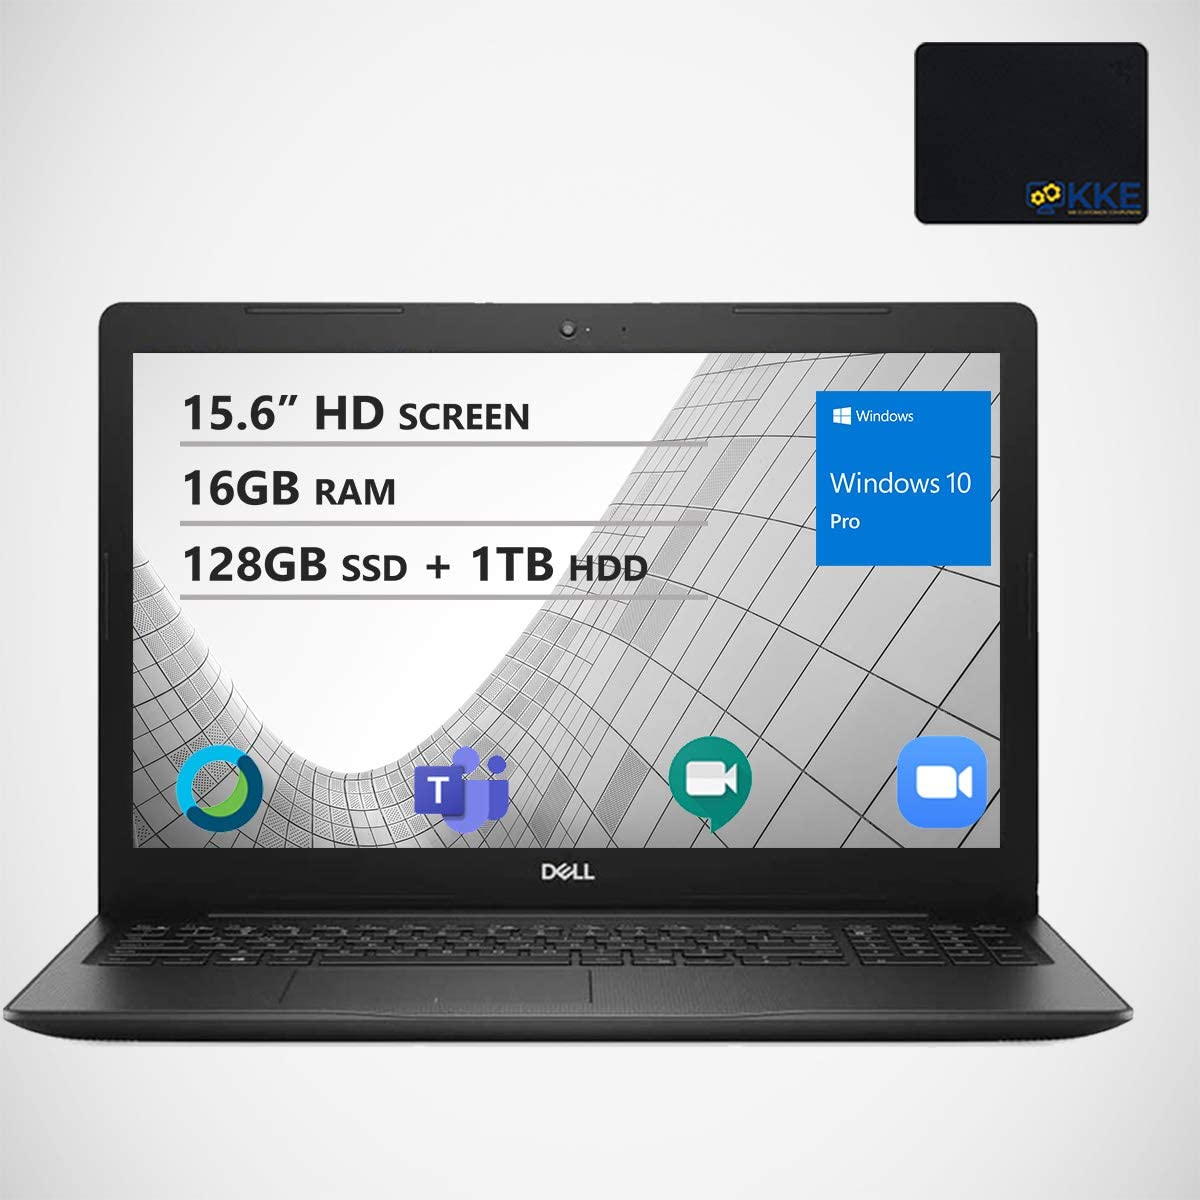 "Dell Inspiron 15.6"" HD Business Laptop, Intel 4205U, 16GB RAM, 128GB PCIe SSD + 1TB HDD, Webcam, WiFi, KKE Mousepad, Bluetooth, Win10 Pro, Black"